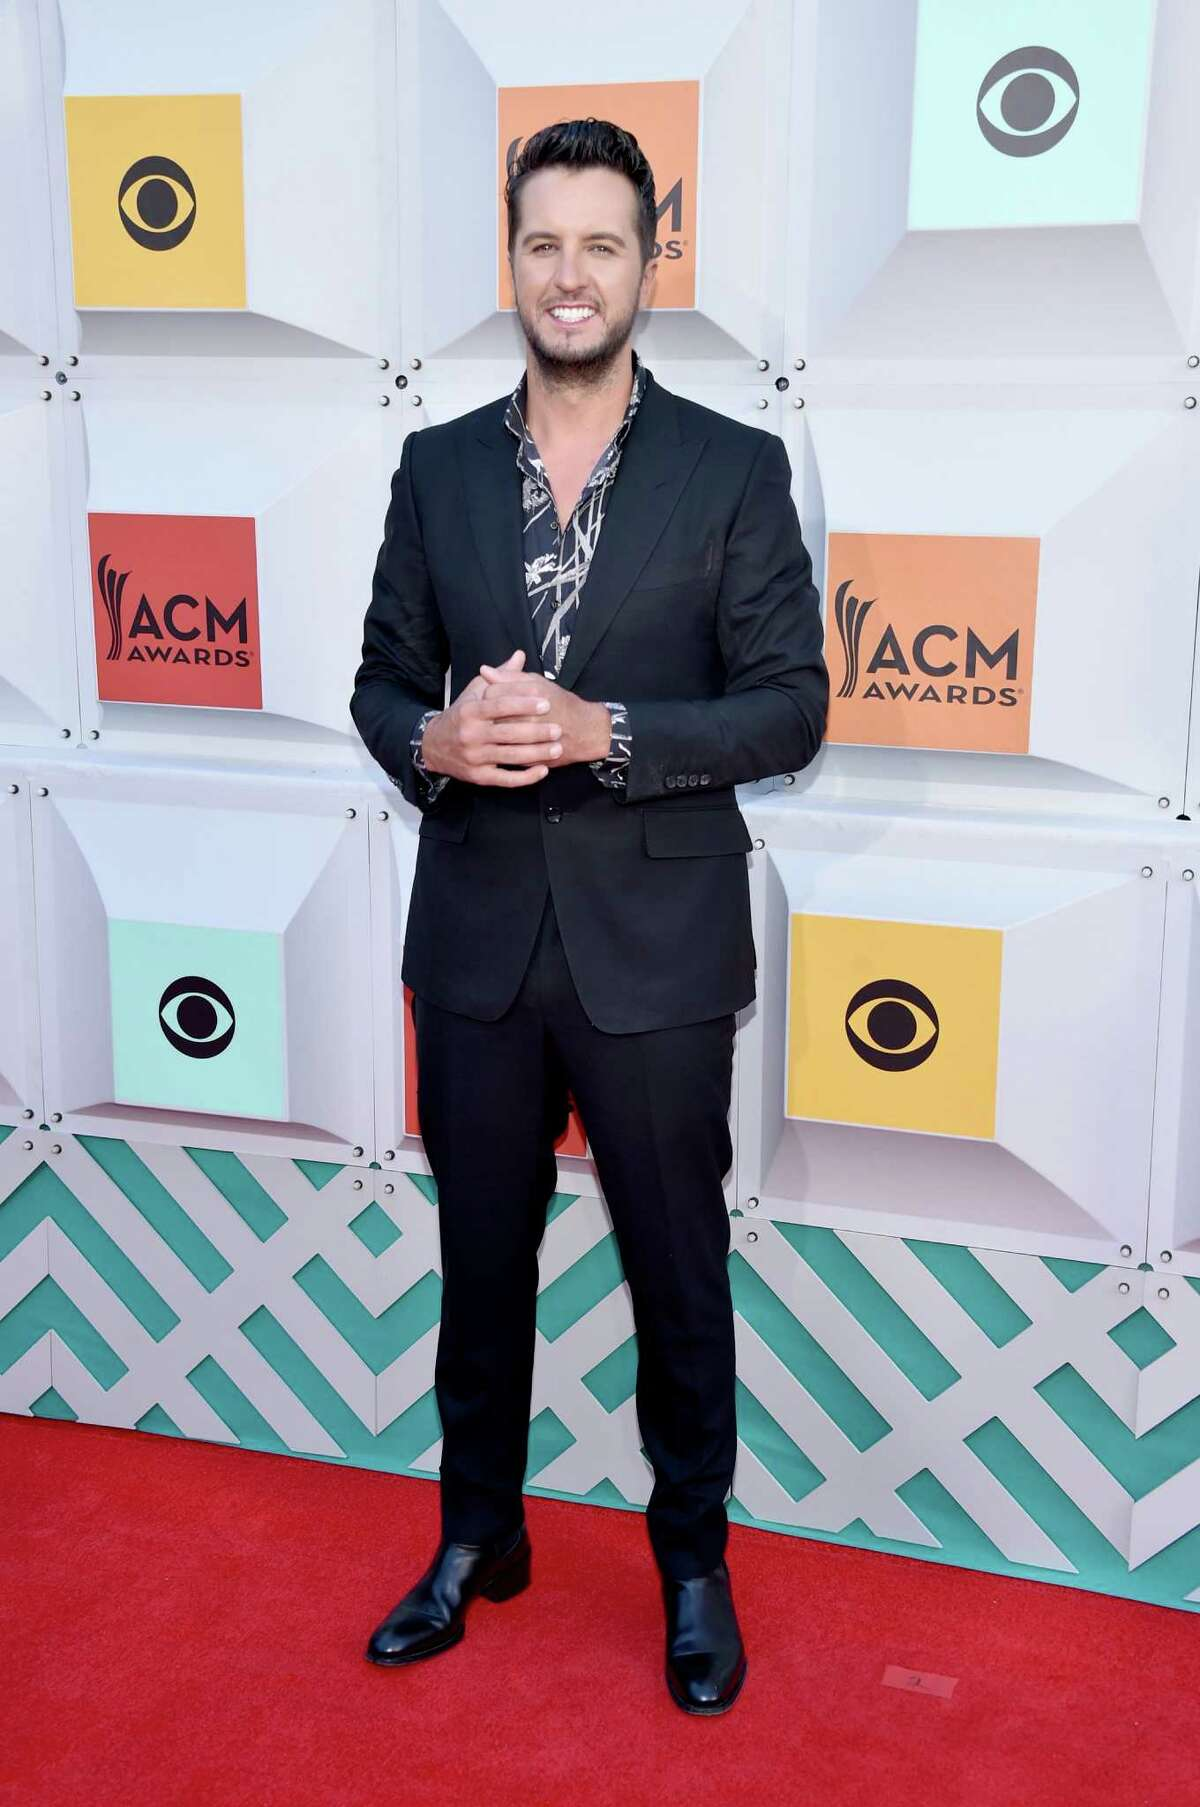 """Luke Bryan - Get up on the hood of my daddy's tractor / Up on the tool box, it don't matter / Down on the tailgate, girl I can't wait / To watch you do your thing - """"Country Girl (Shake It For Me)"""""""